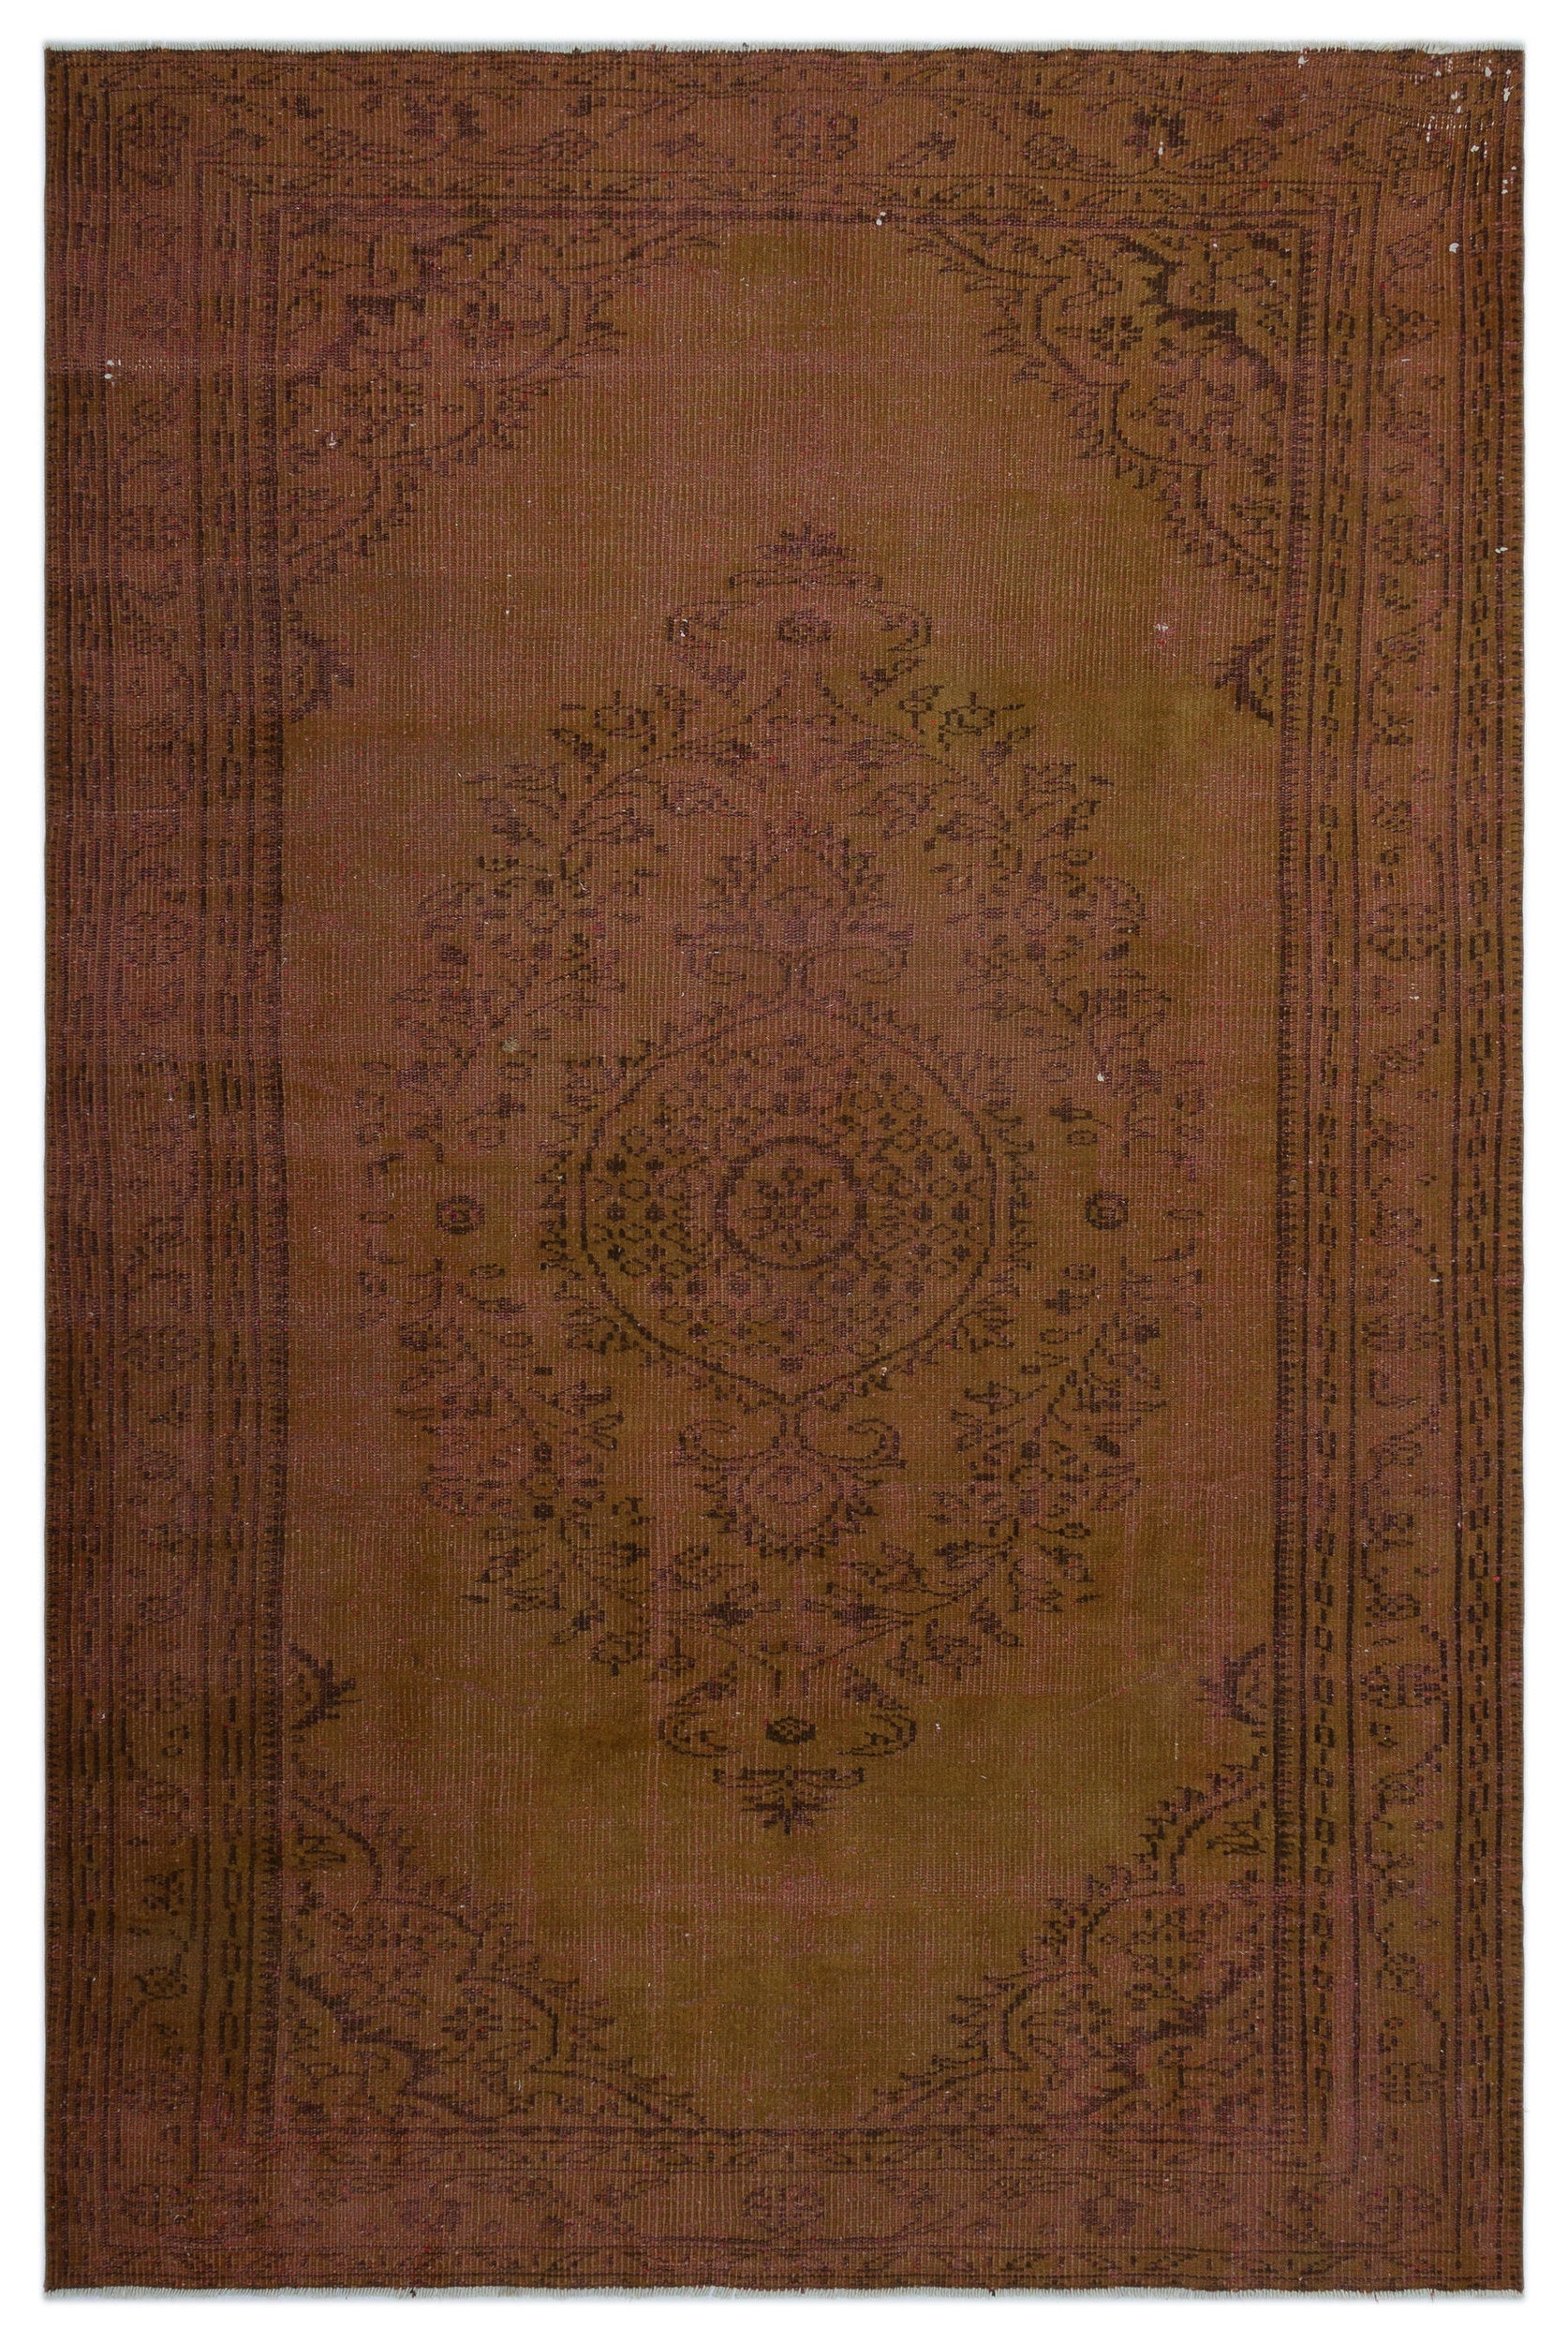 Brown Over Dyed Vintage Rug 5'8'' x 8'8'' ft 173 x 265 cm